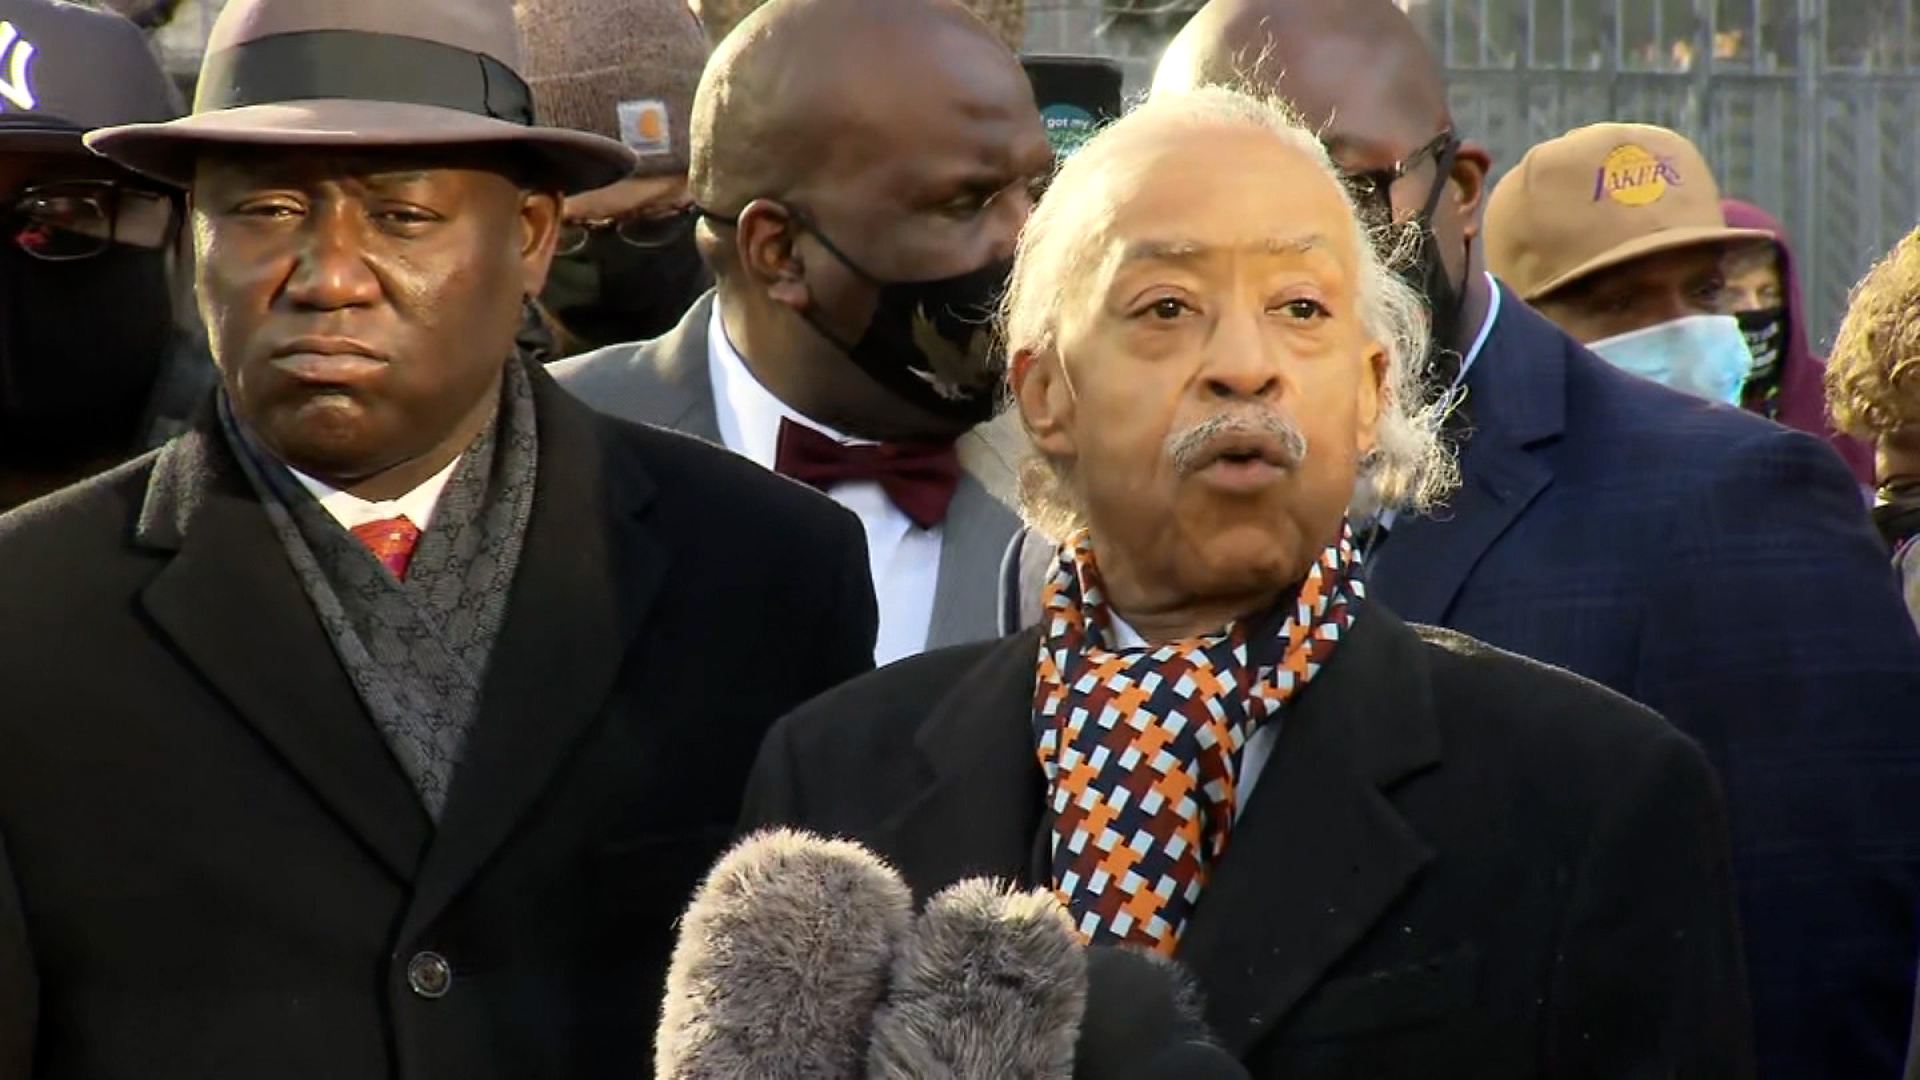 Reverend Al Sharpton speaks during a press conference in Minneapolis, Minnesota, on March 29.